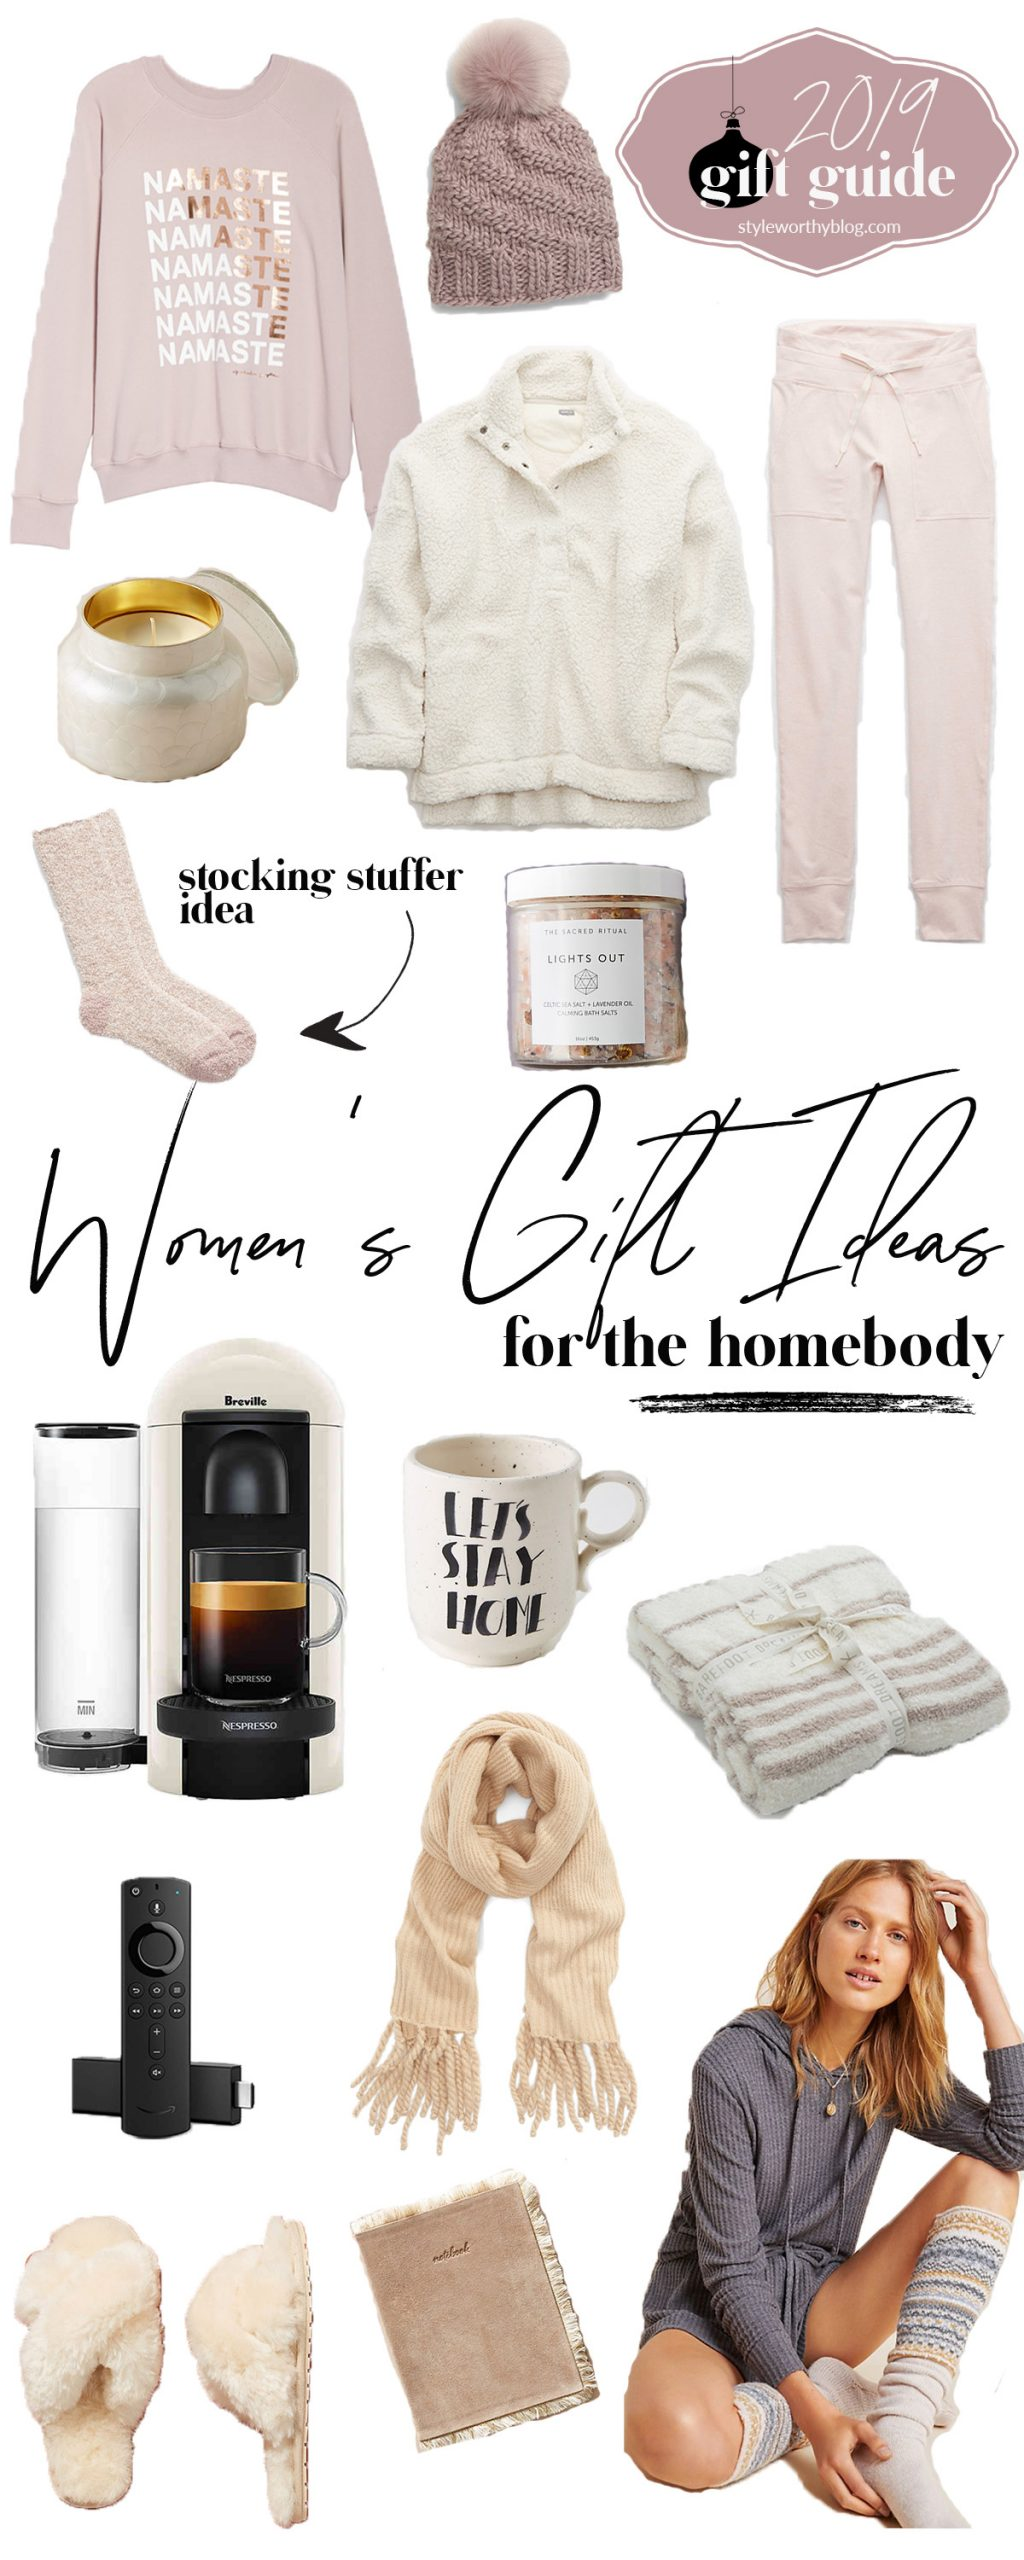 Women's gift guide. Gift ideas for the homebody